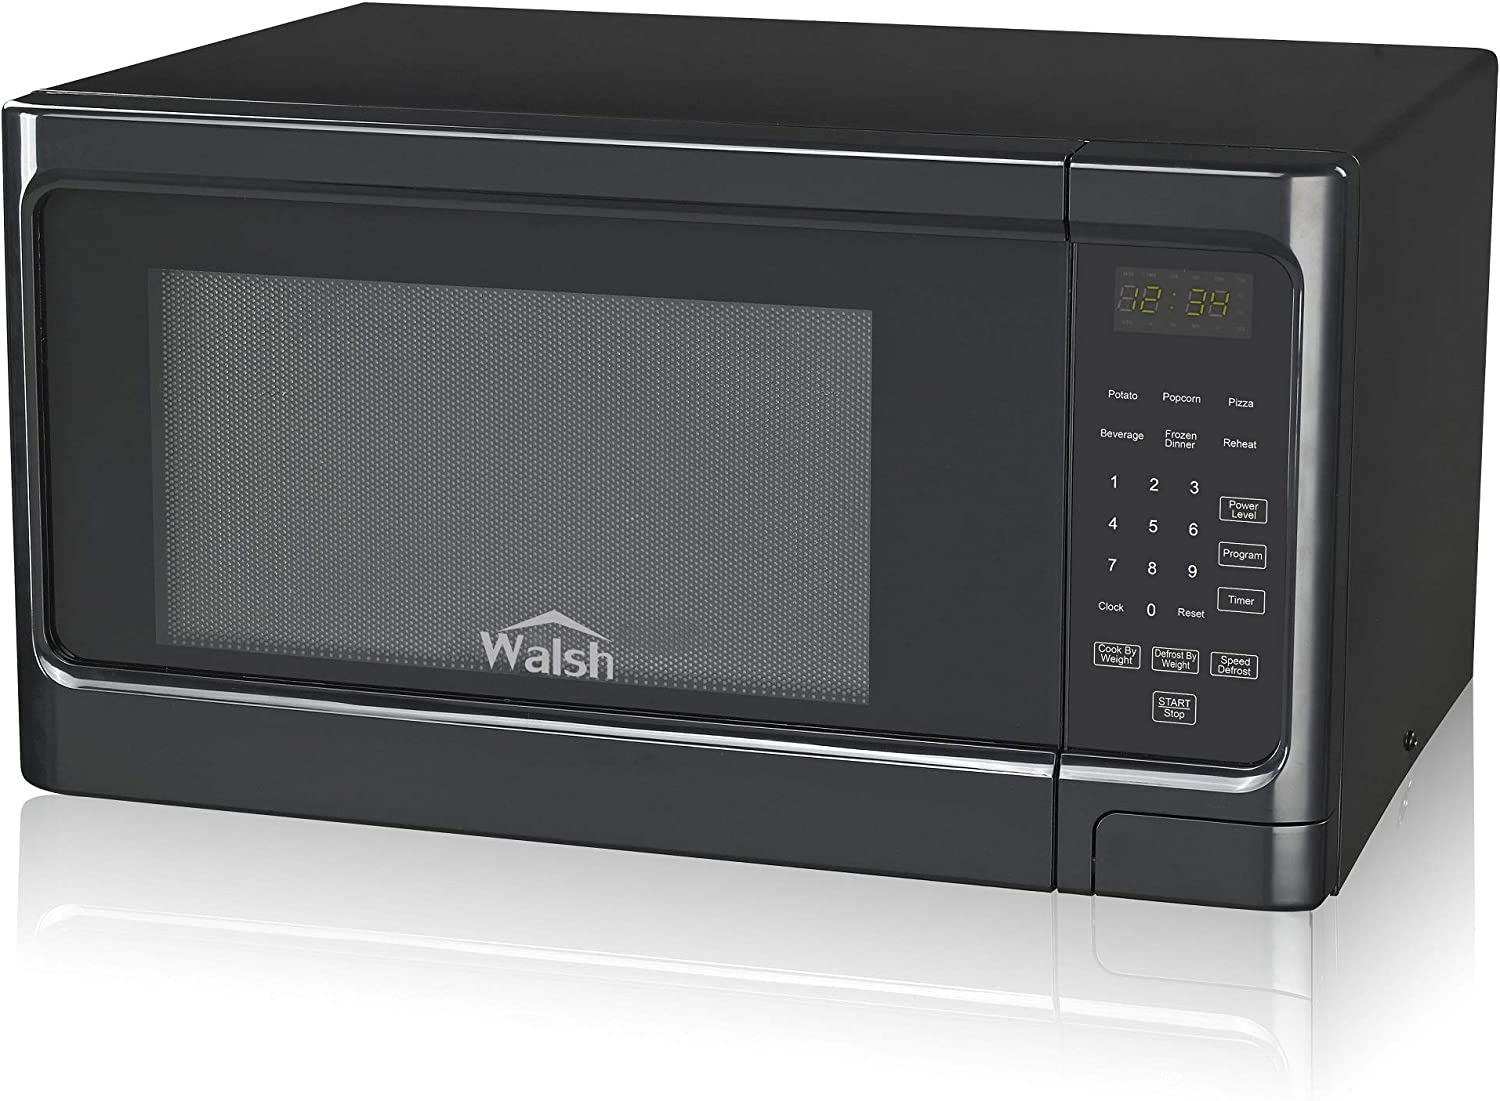 WALSH WSCMS311BK-10 Microwave Oven w/Cook Menu Safety Lock Interior Light and LED Display Countertop Cooker, 1.1 Cu.ft Black